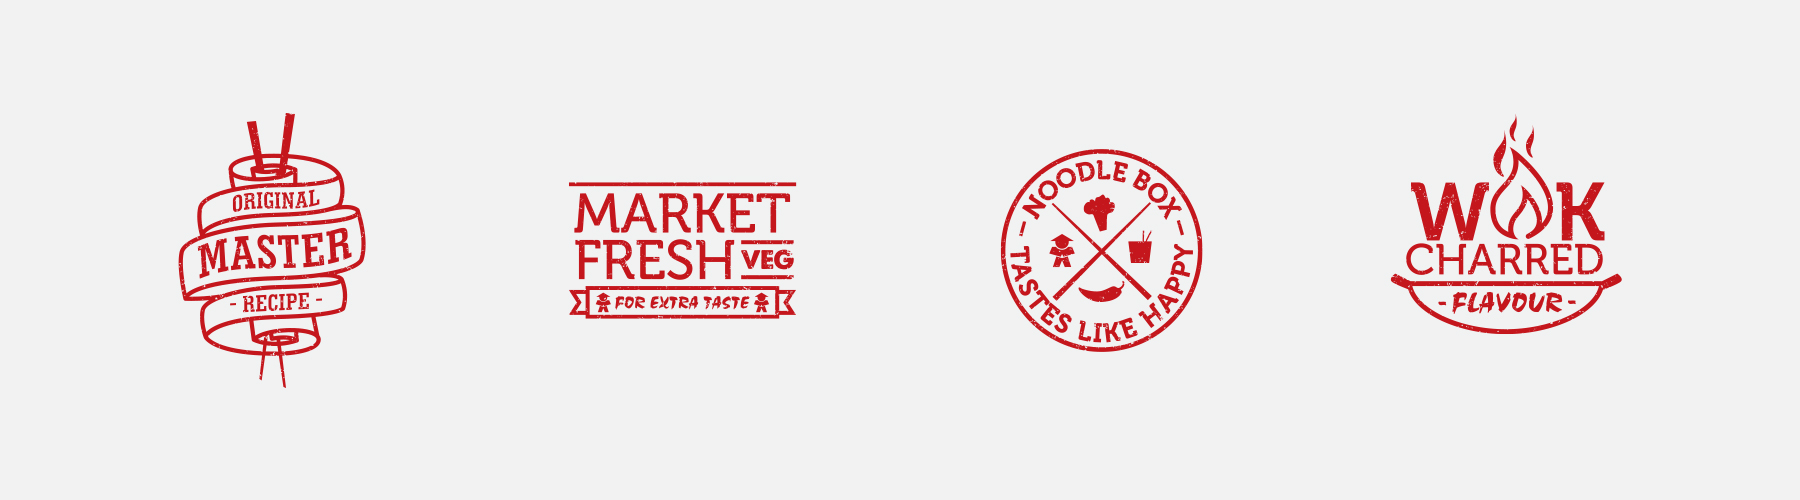 Noodle Box Icons - Brand Marks